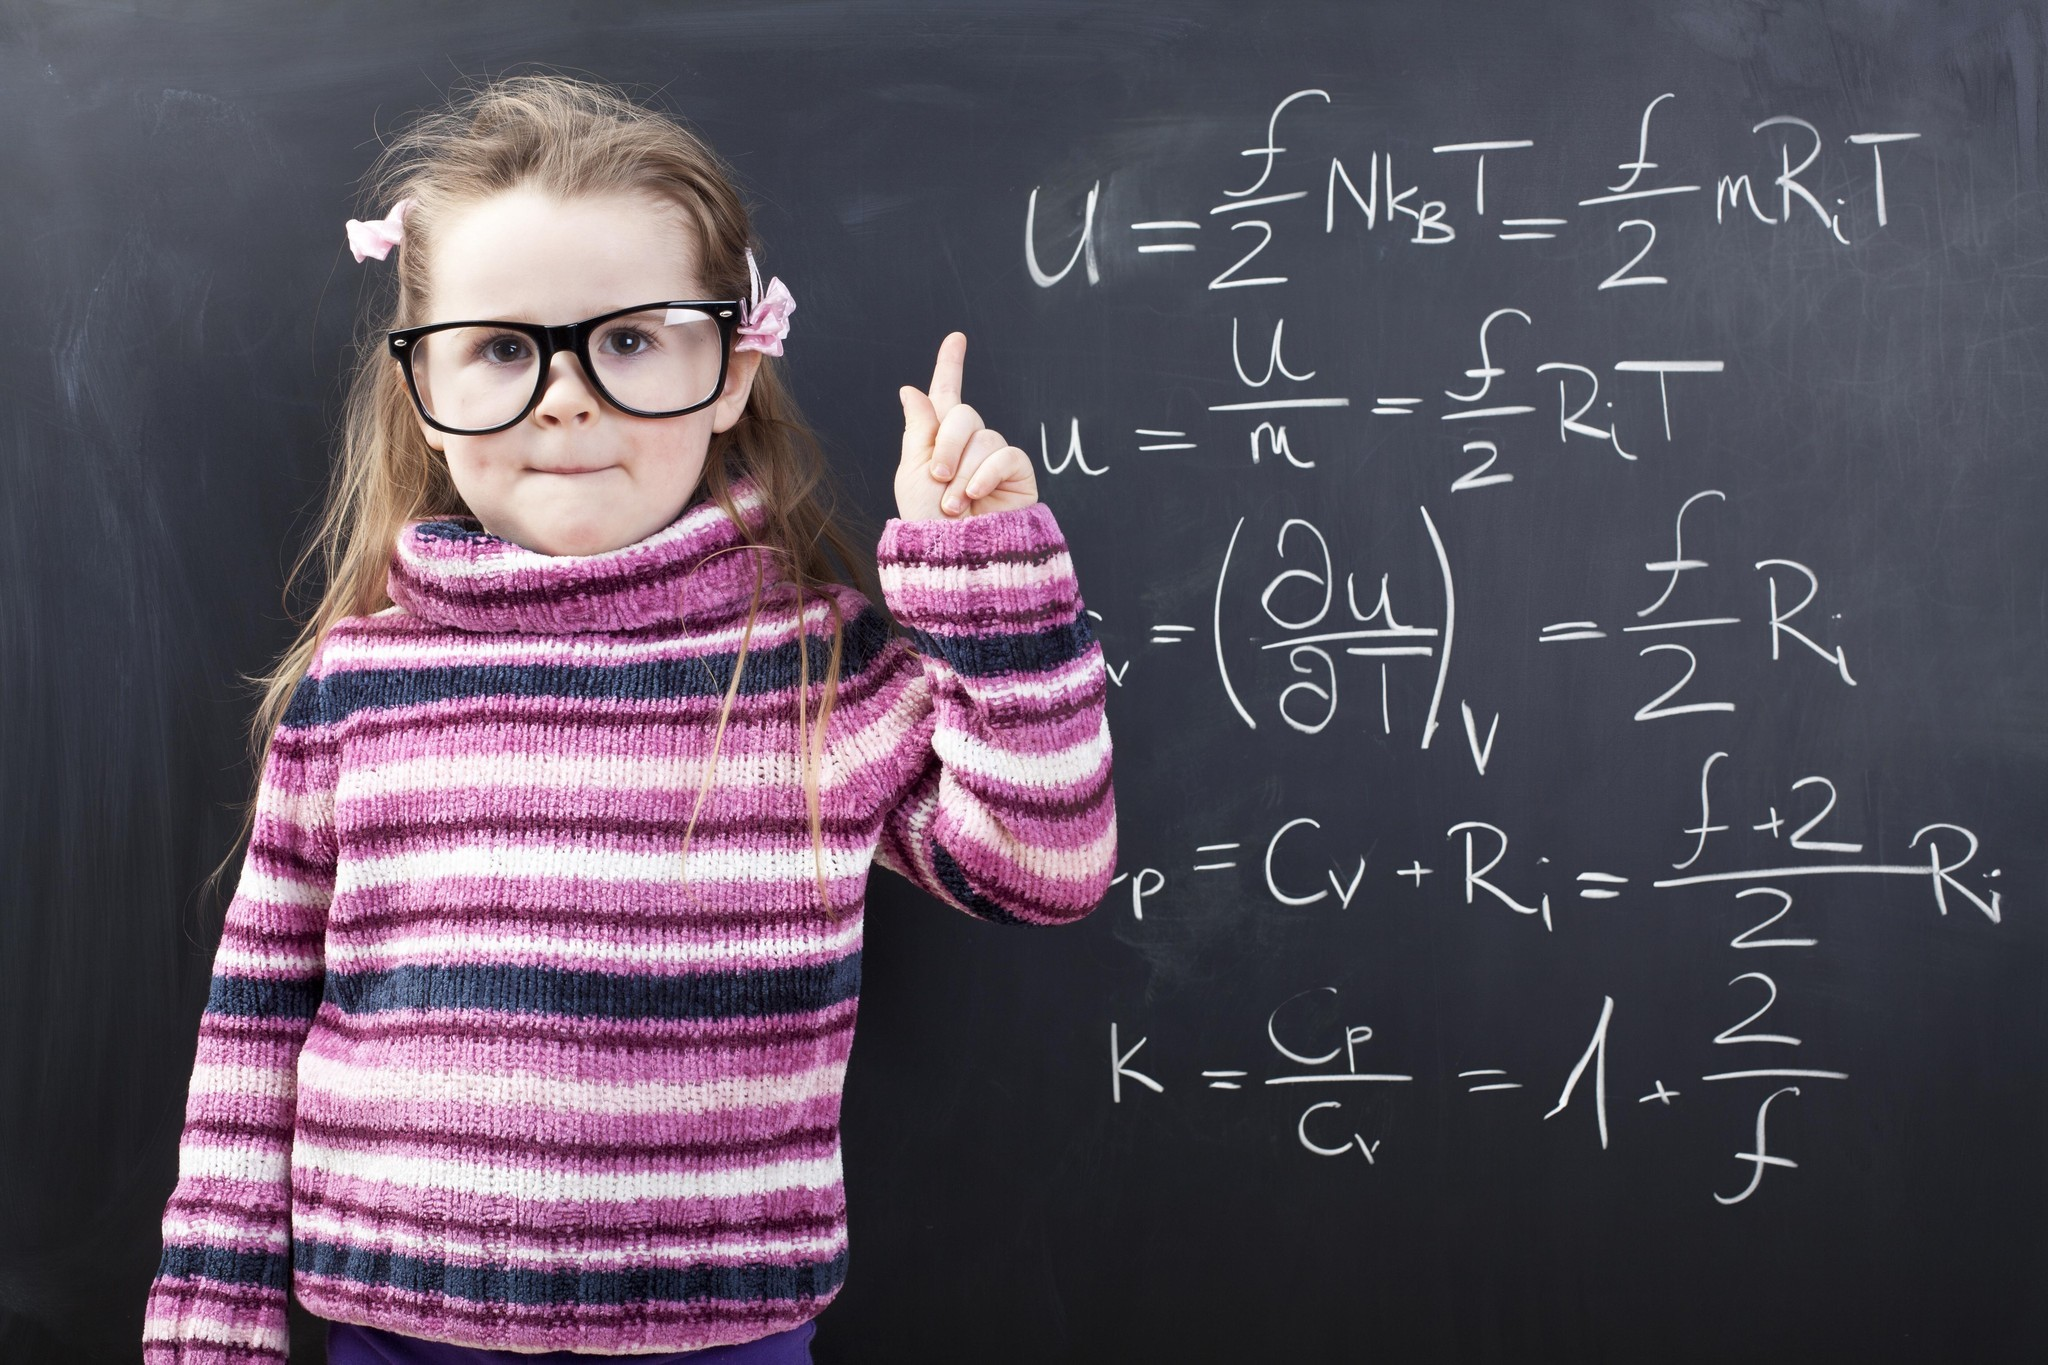 teaching math Math instruction is stuck in the last century how can we change teaching methods to move past rote memorization and help students develop a more meaningful understanding – and be better at math.